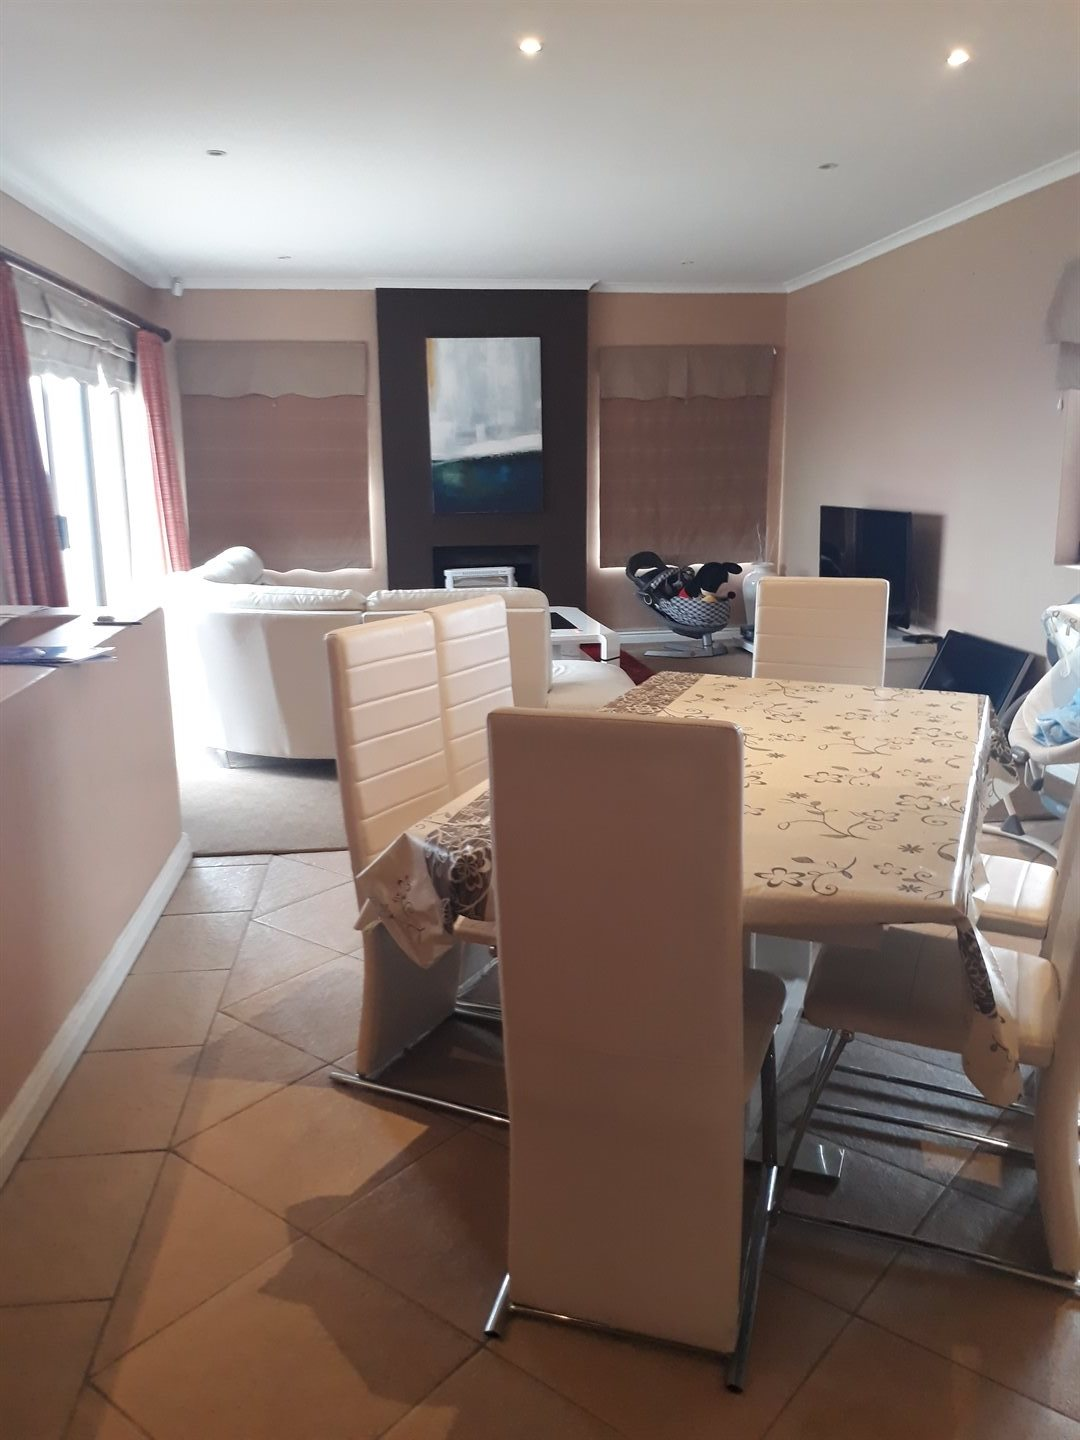 House for sale in lovemore heights estate bedroom